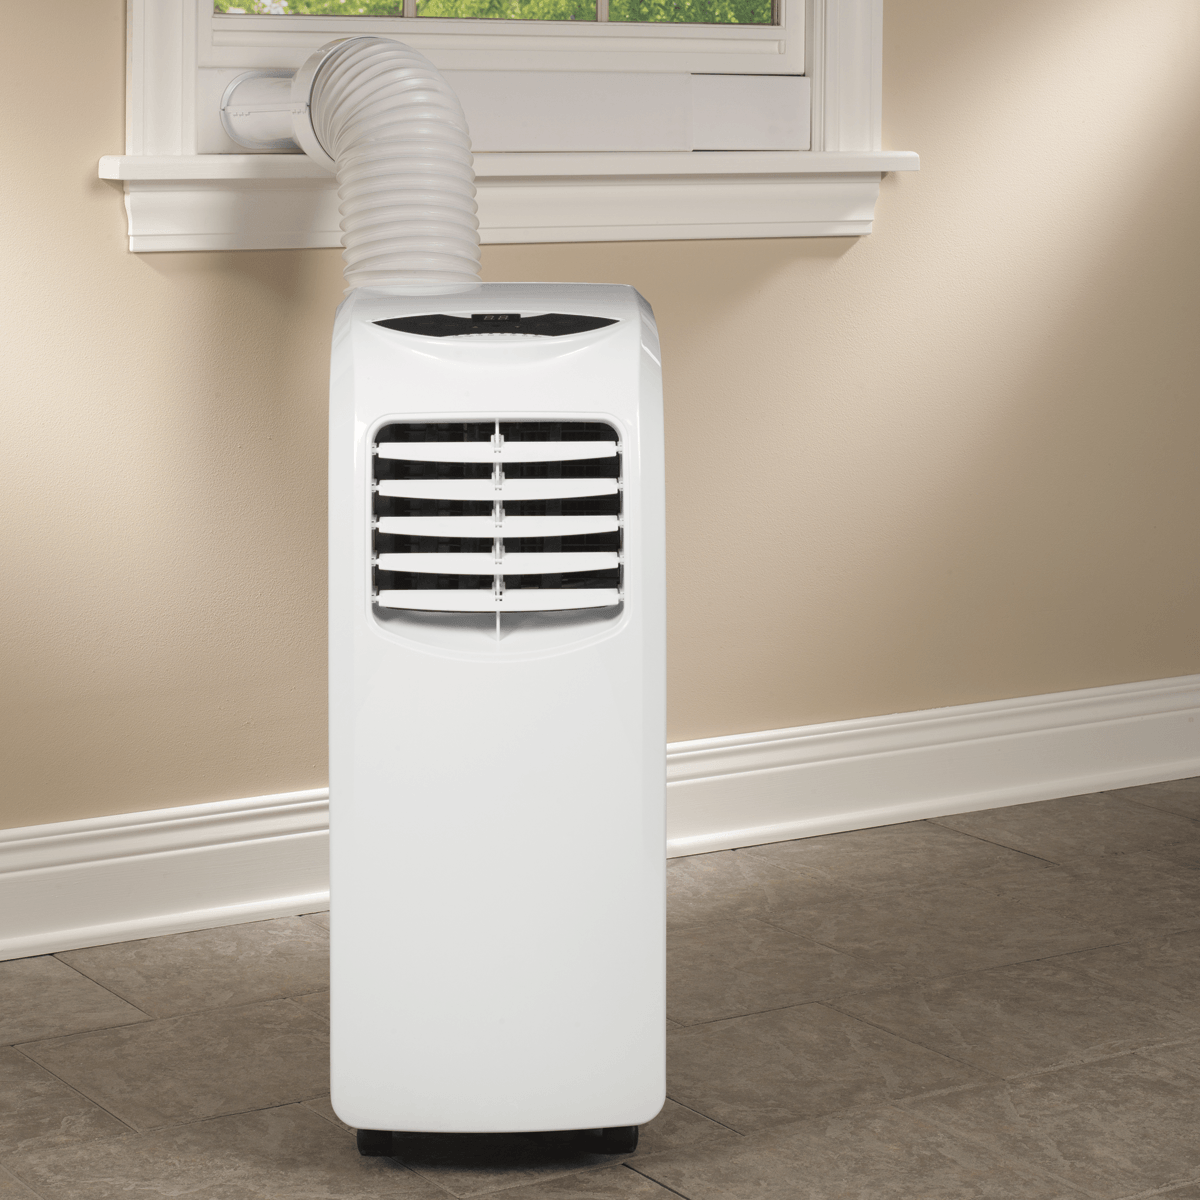 Displaying Images Portable Air Conditioner Window Kit